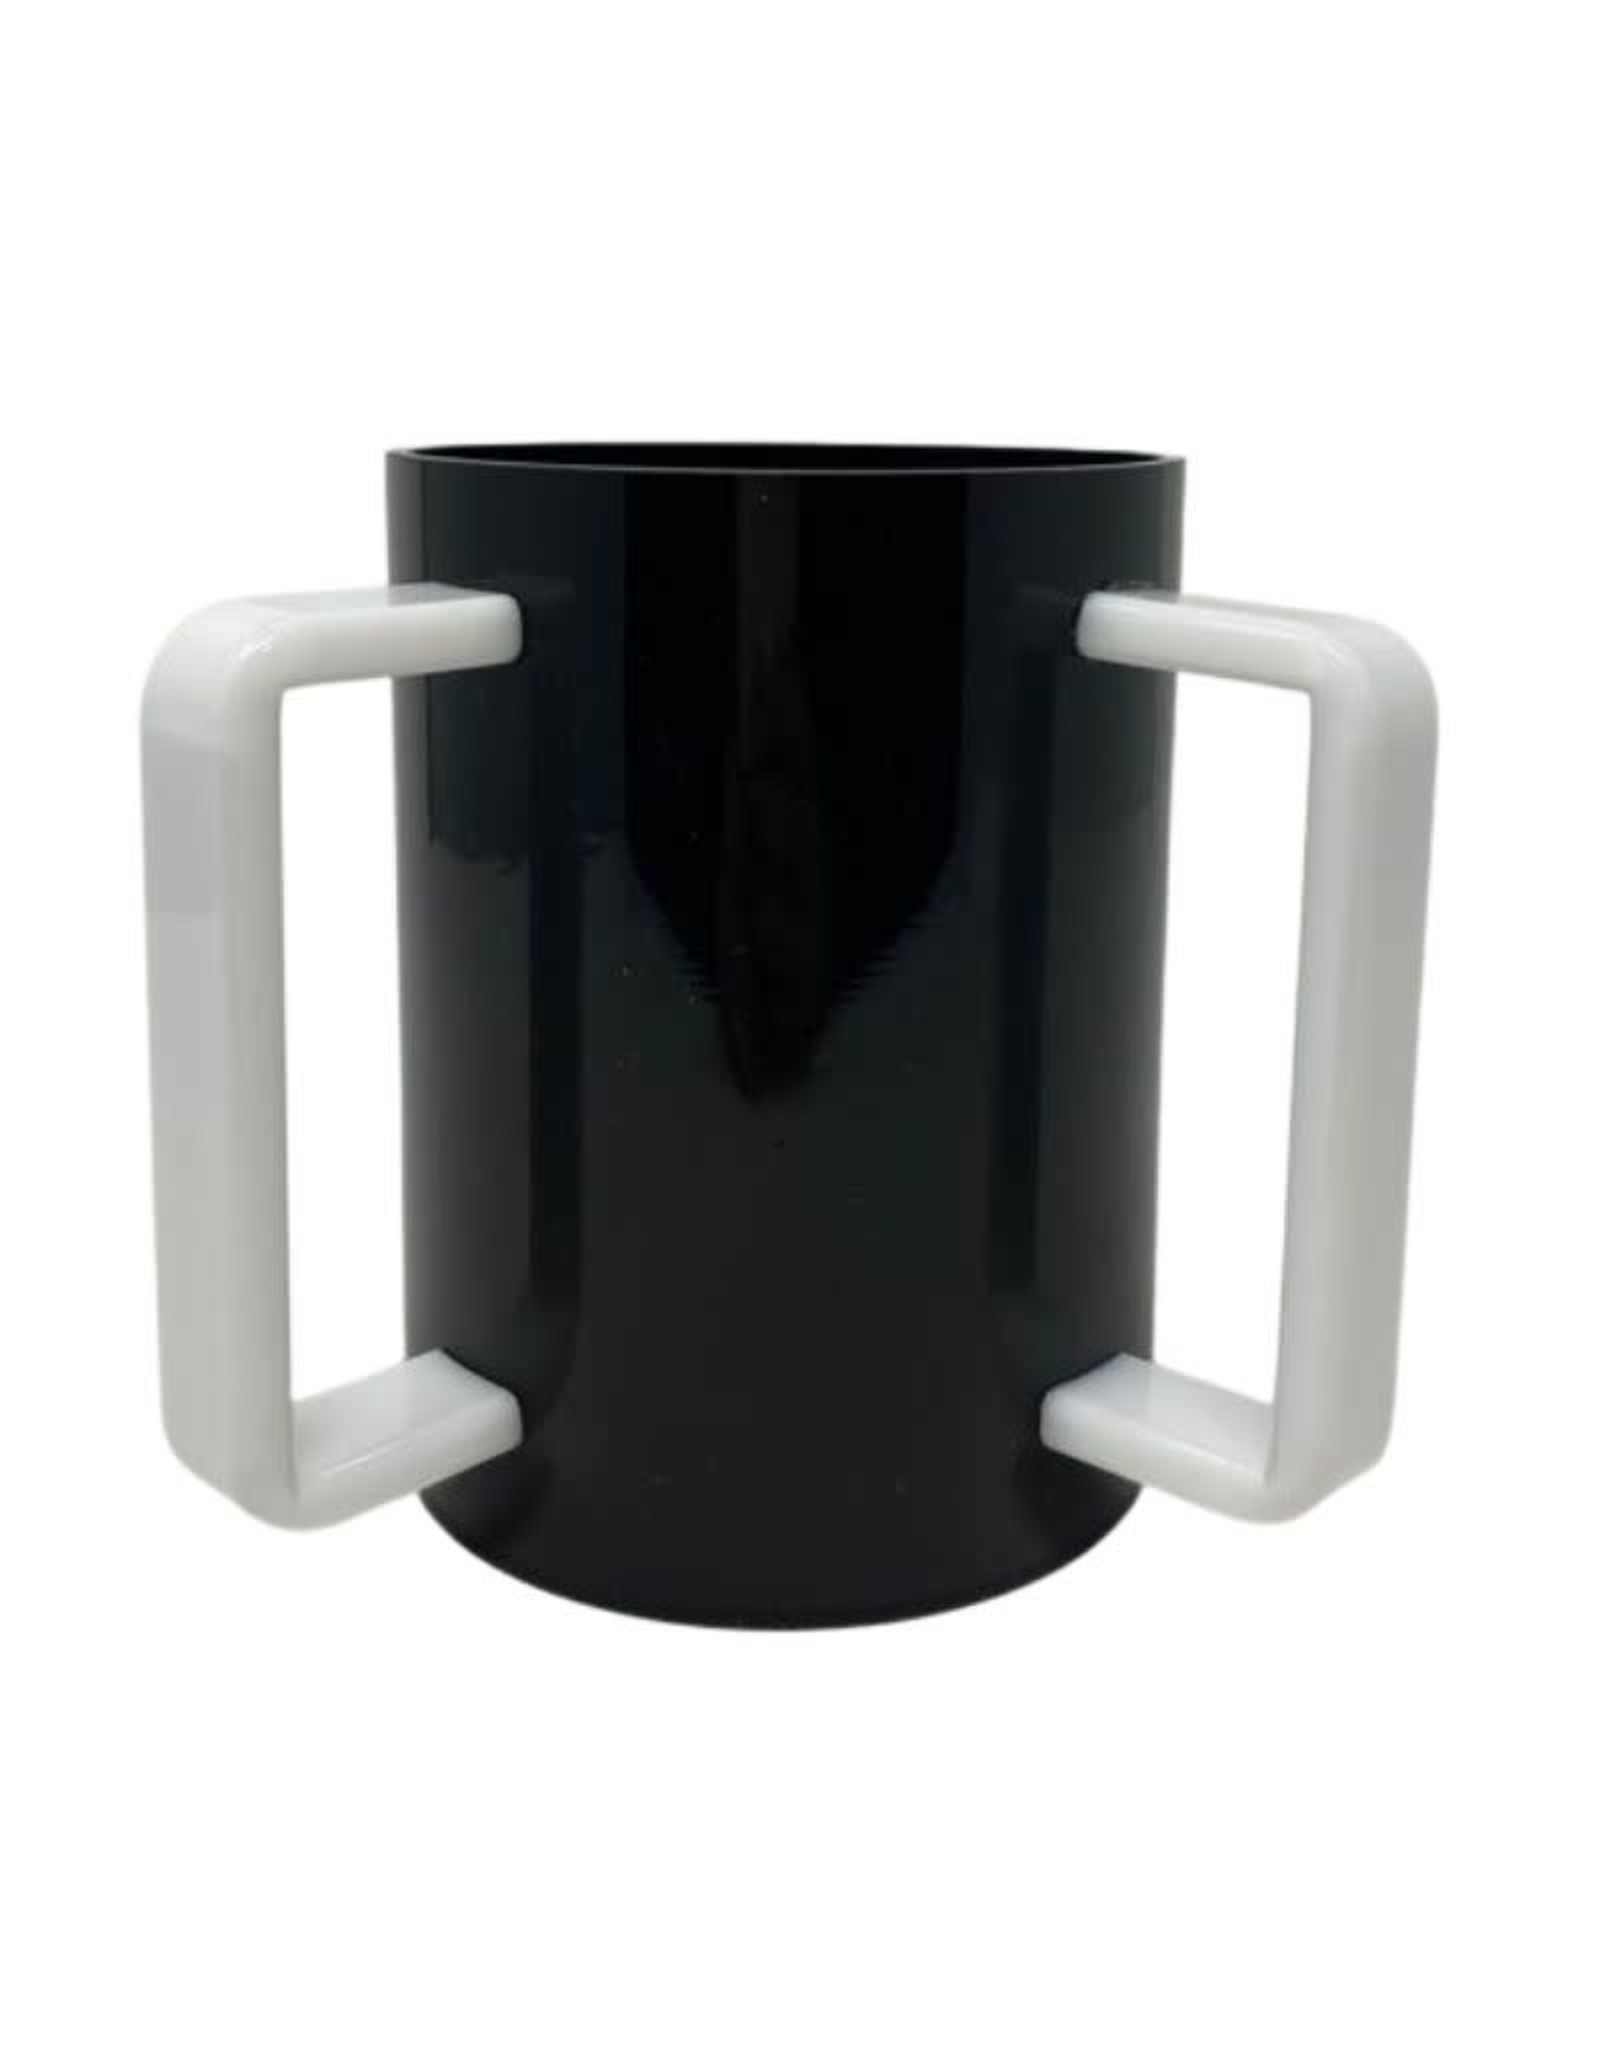 Acrylic Washing Cup Black w White Handles